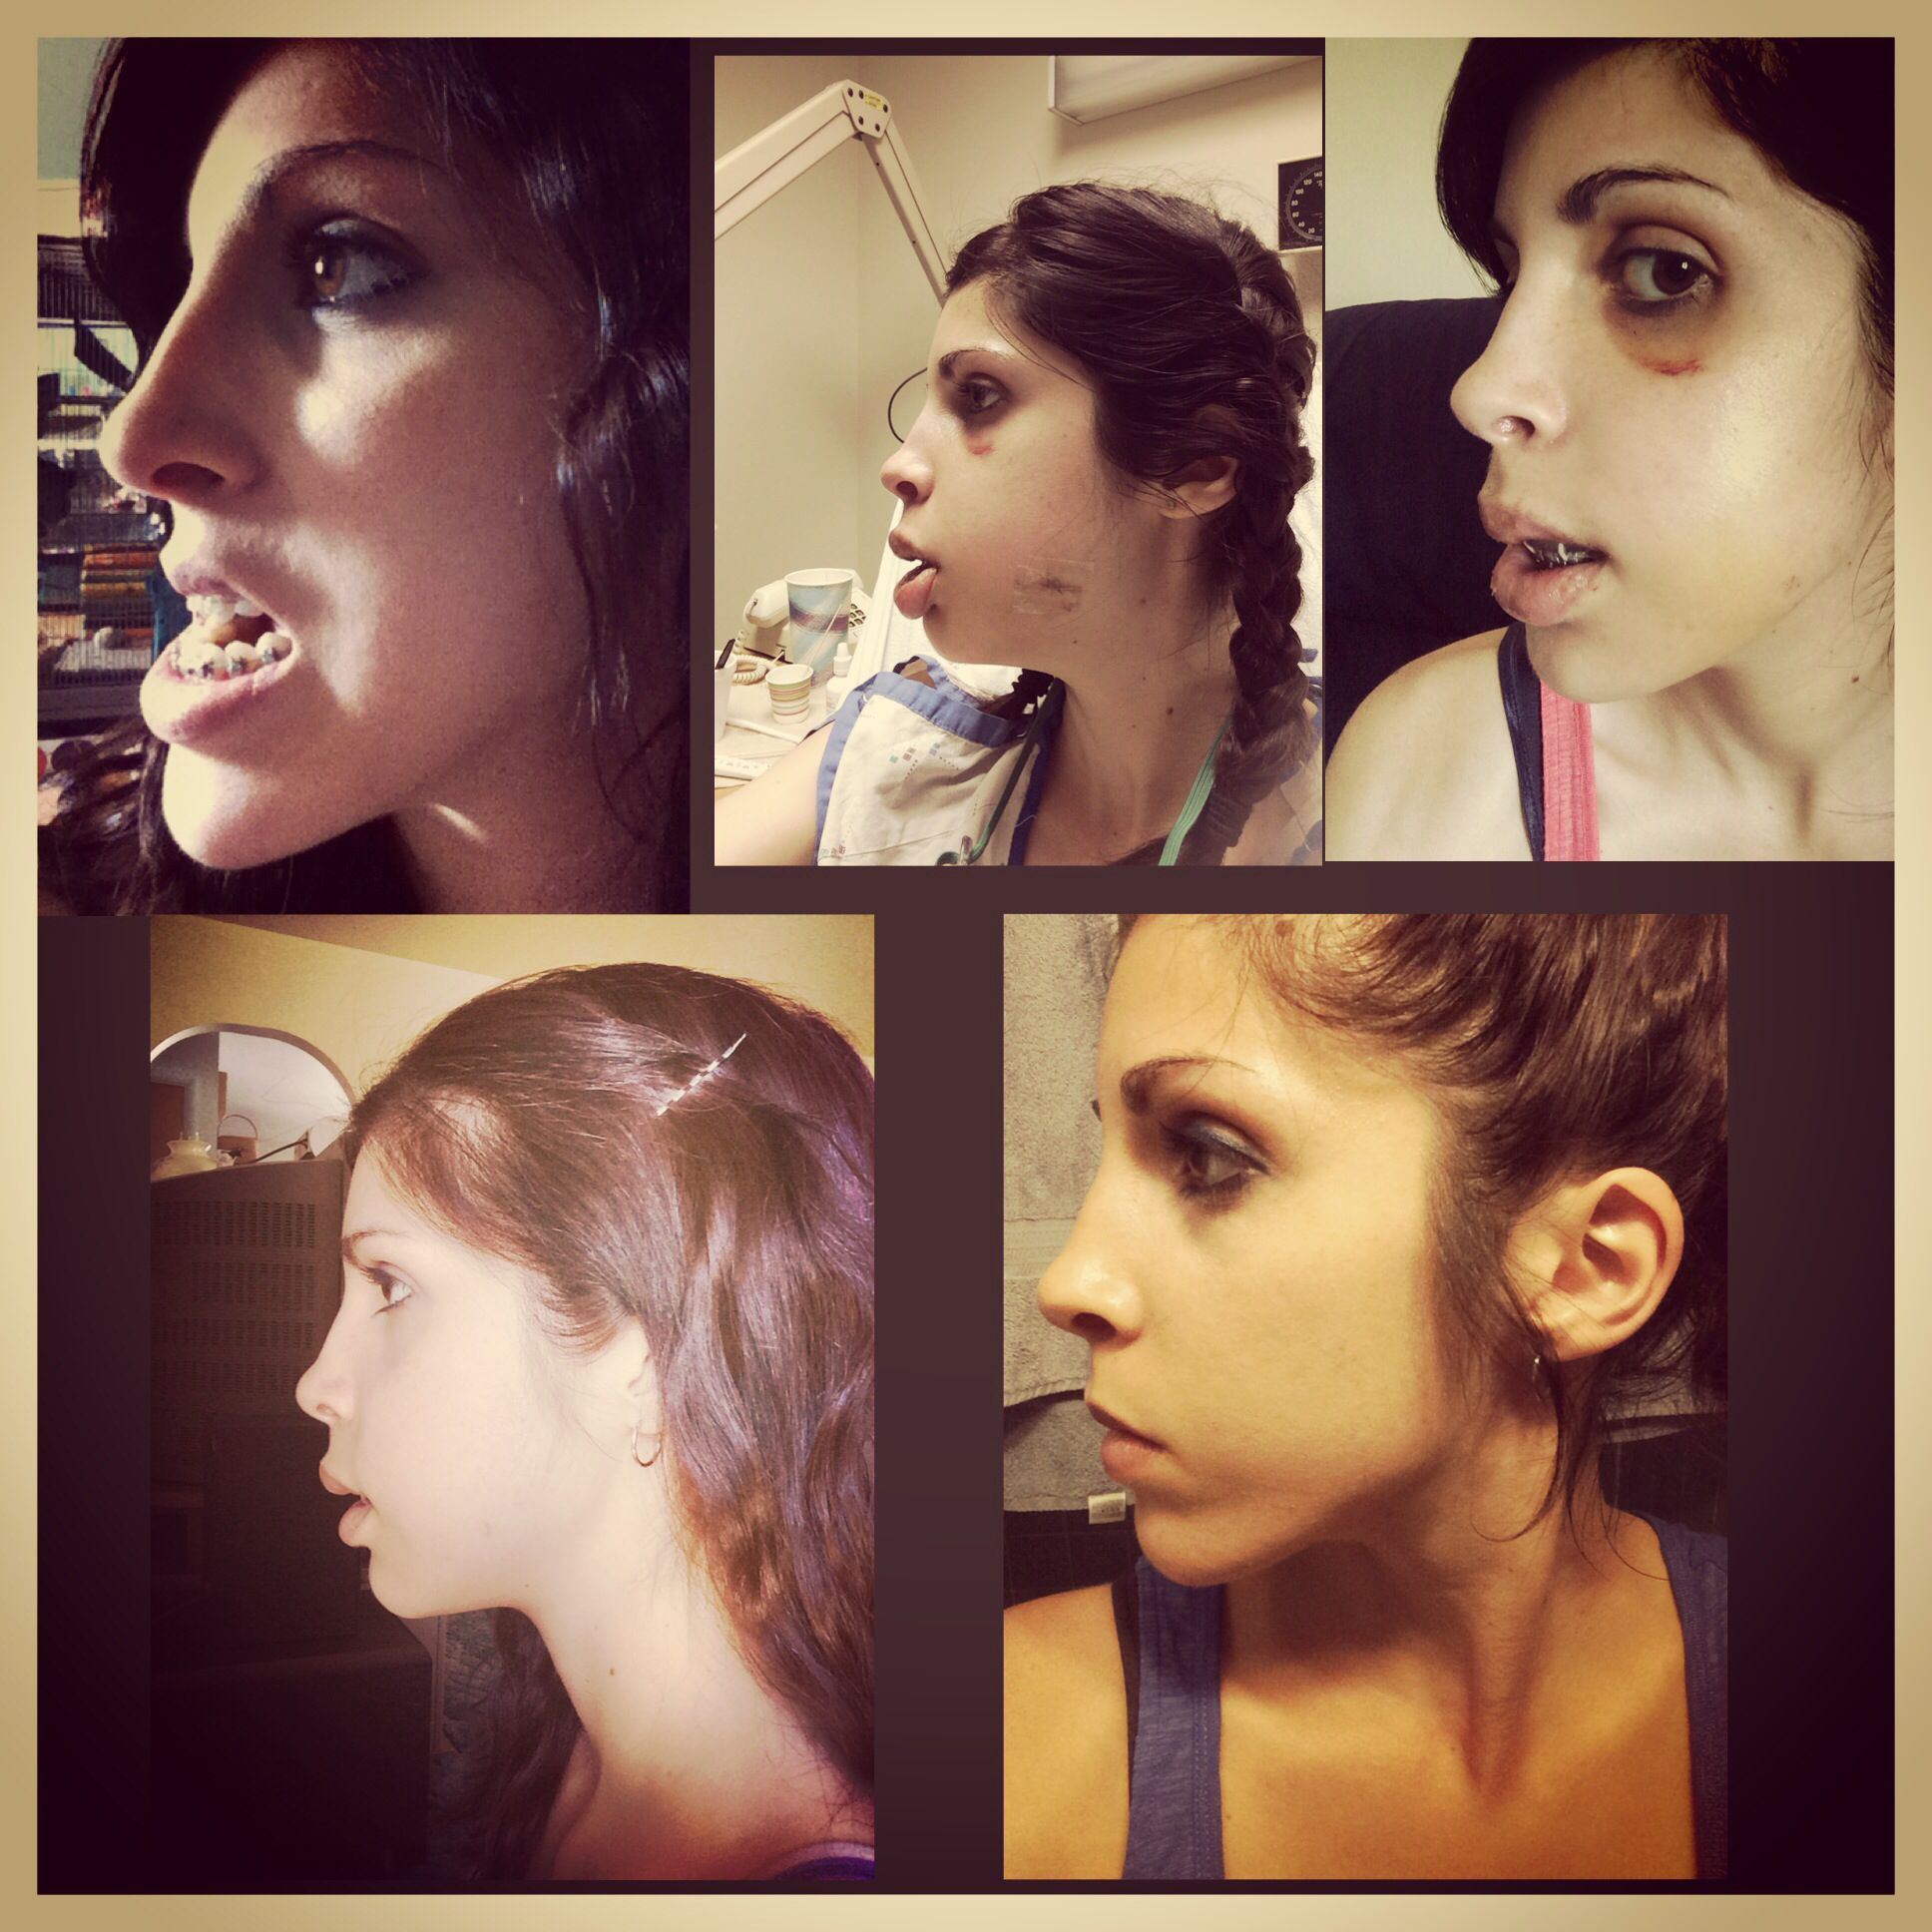 Double jaw surgery before and after. Maxillofacial surgery ...